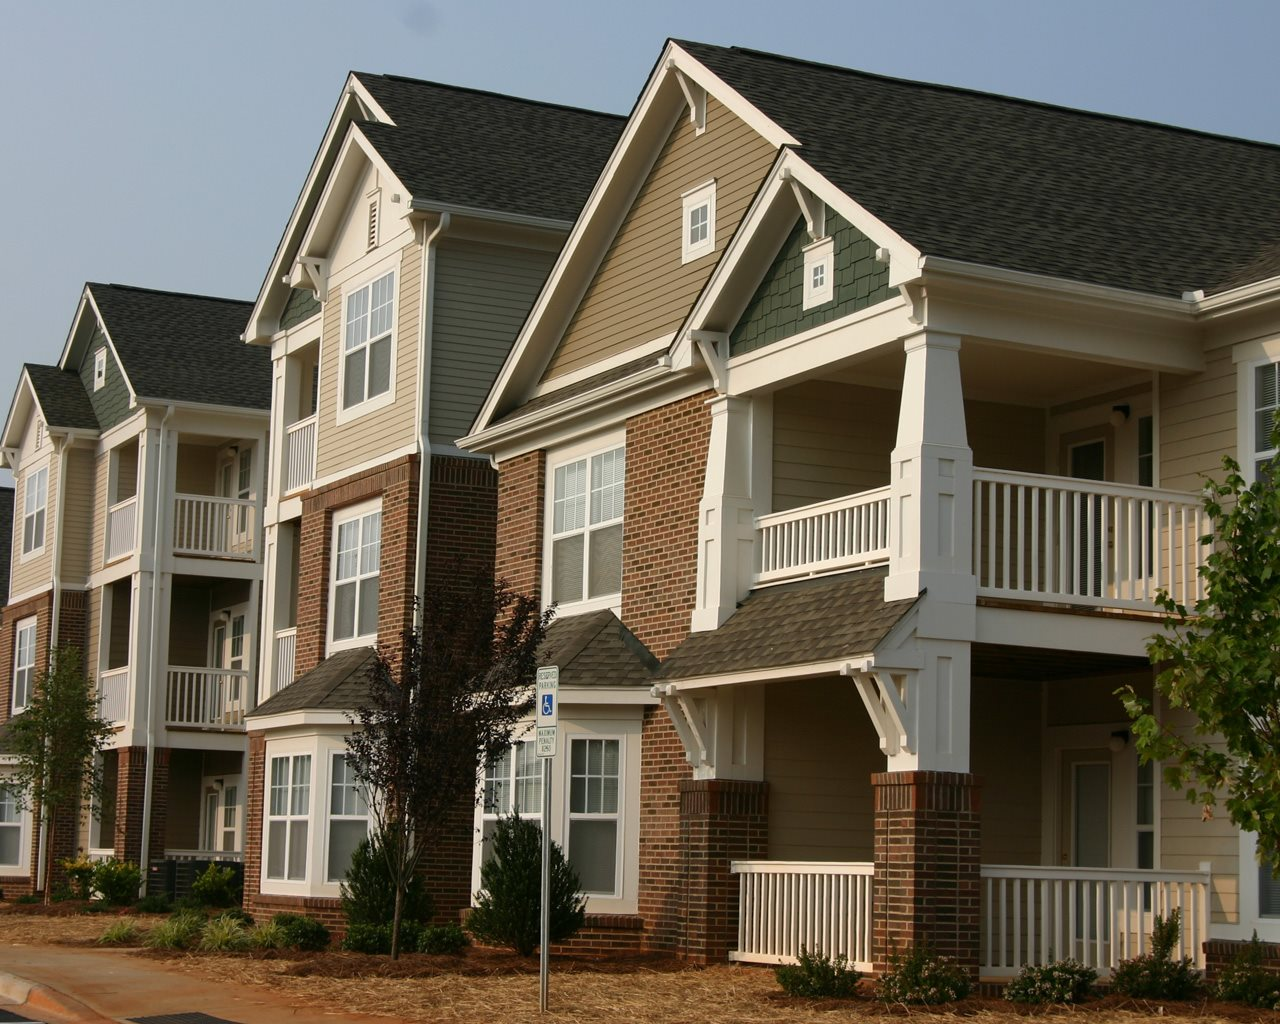 Image of Montgomery Gardens Apartments